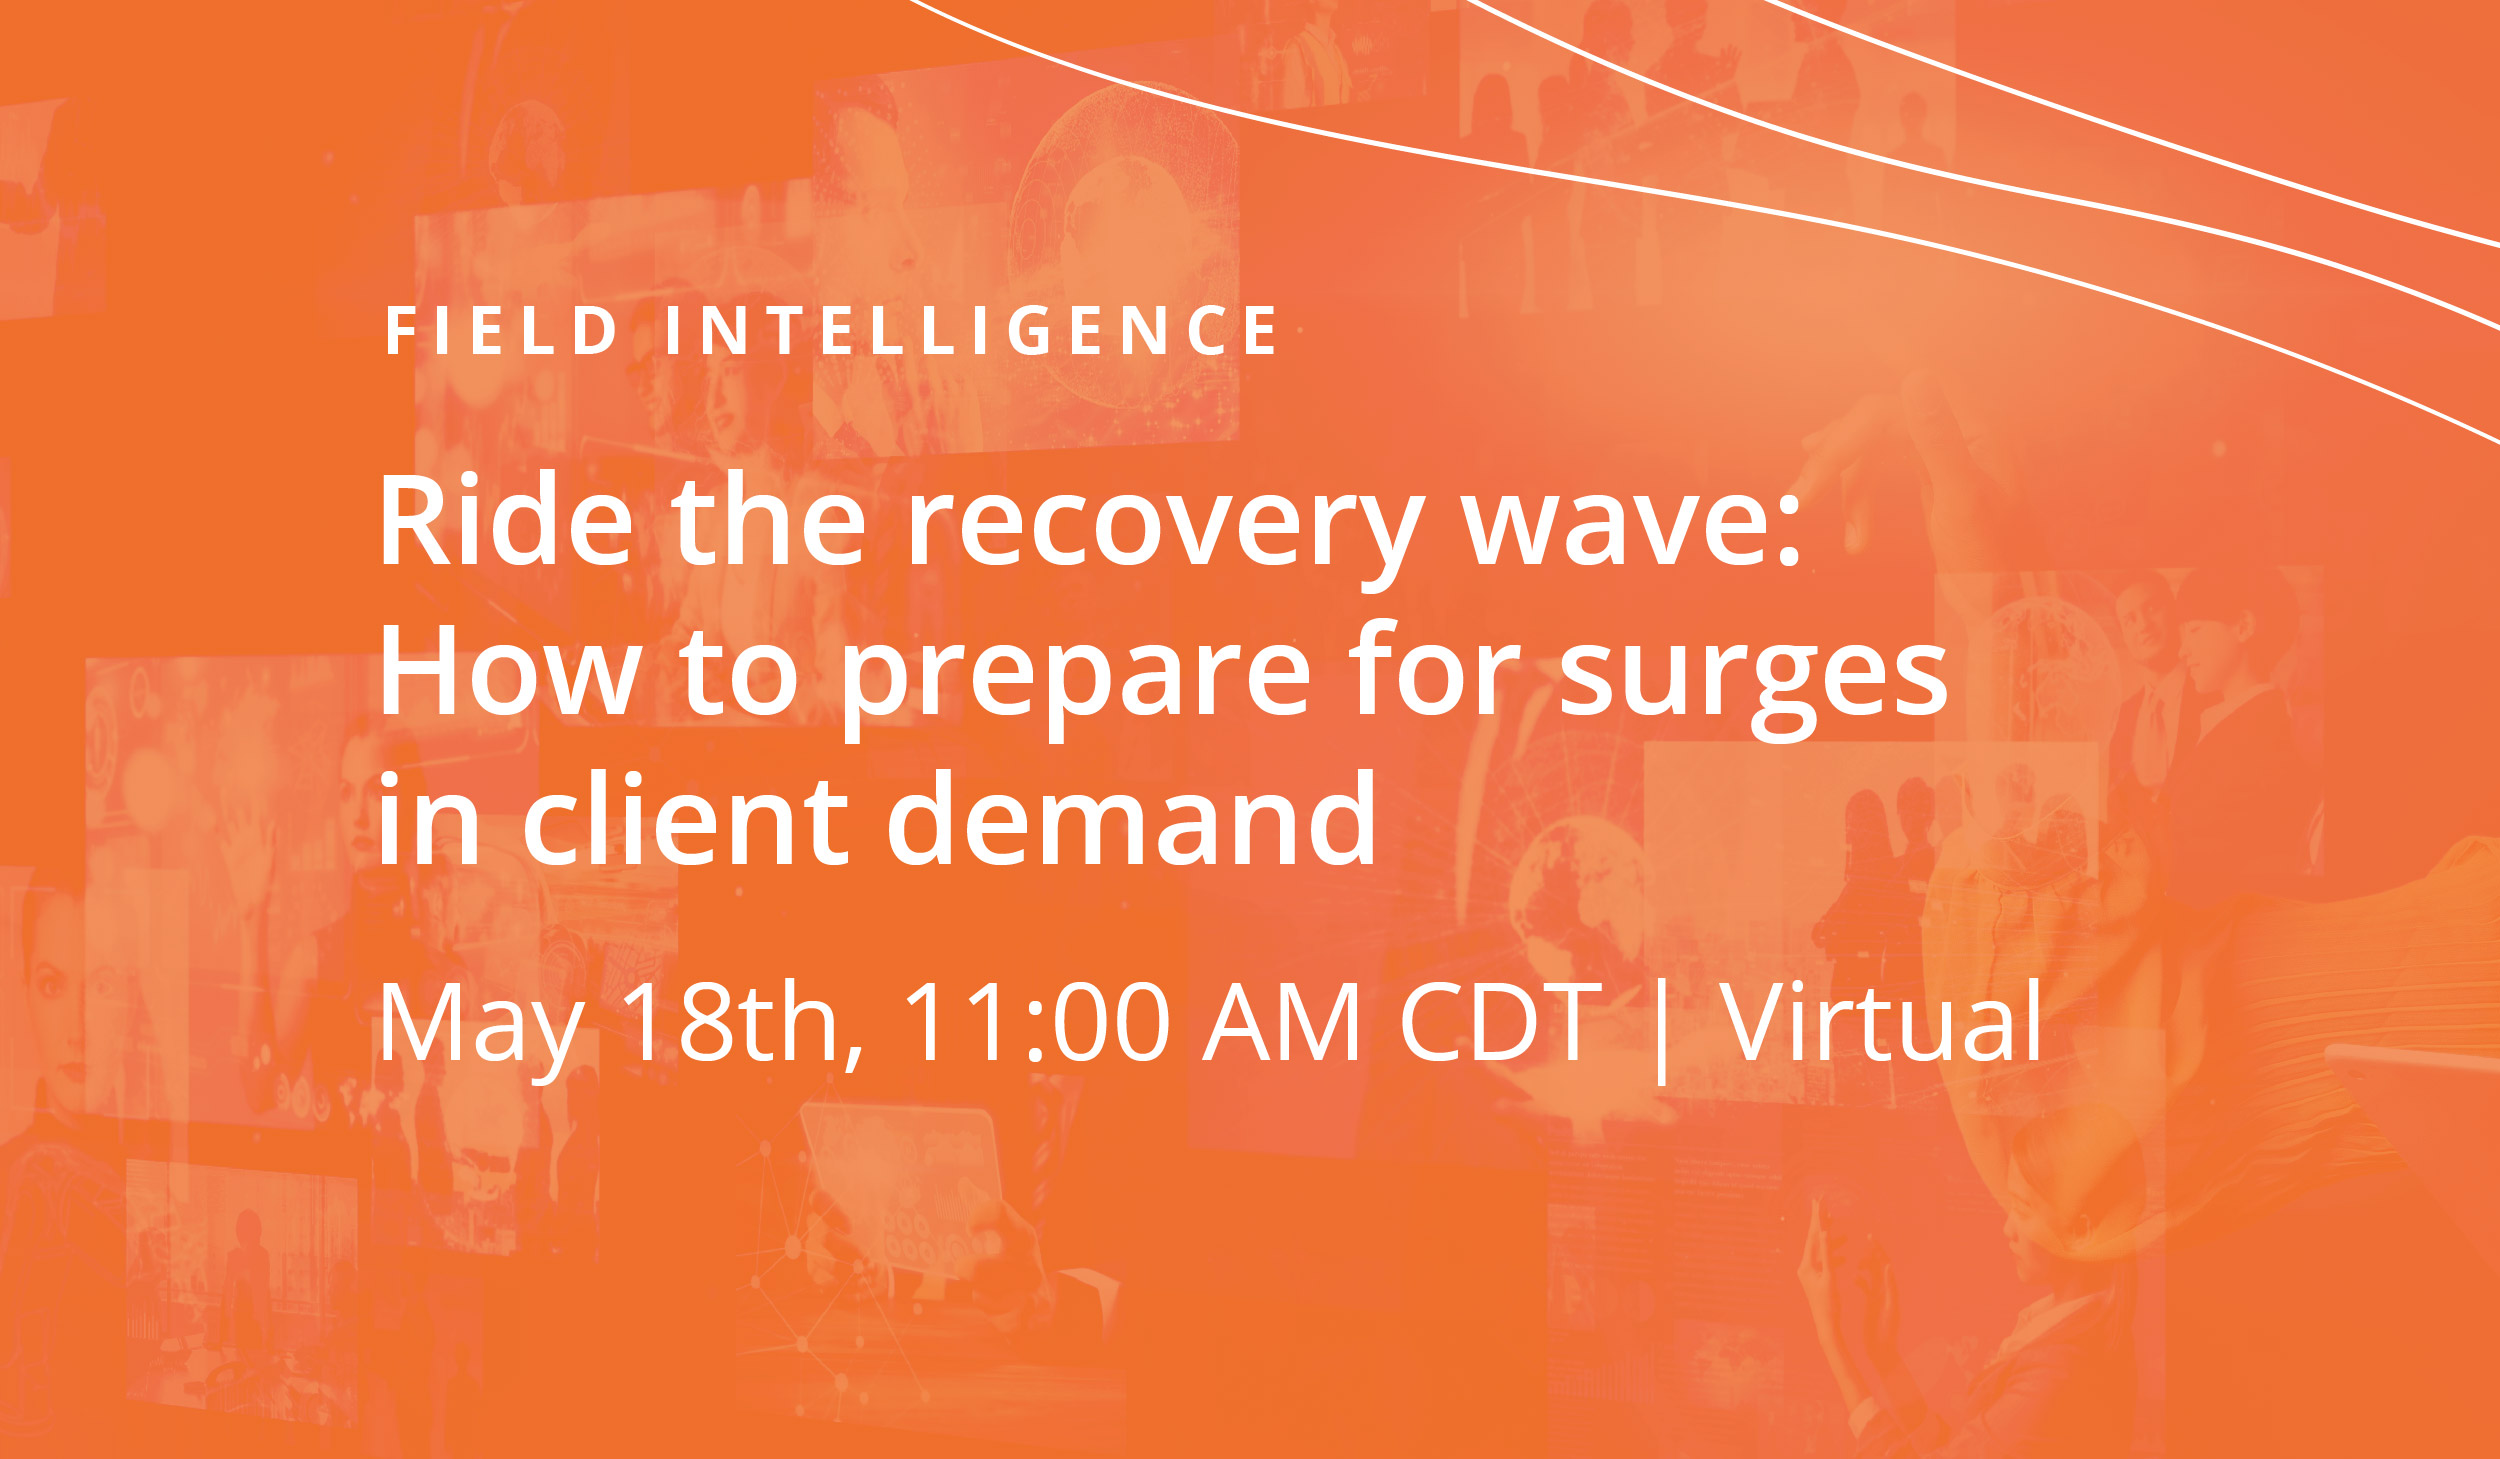 Field Intelligence webinar: Ride the recovery wave. How to prepare for surges in client demand